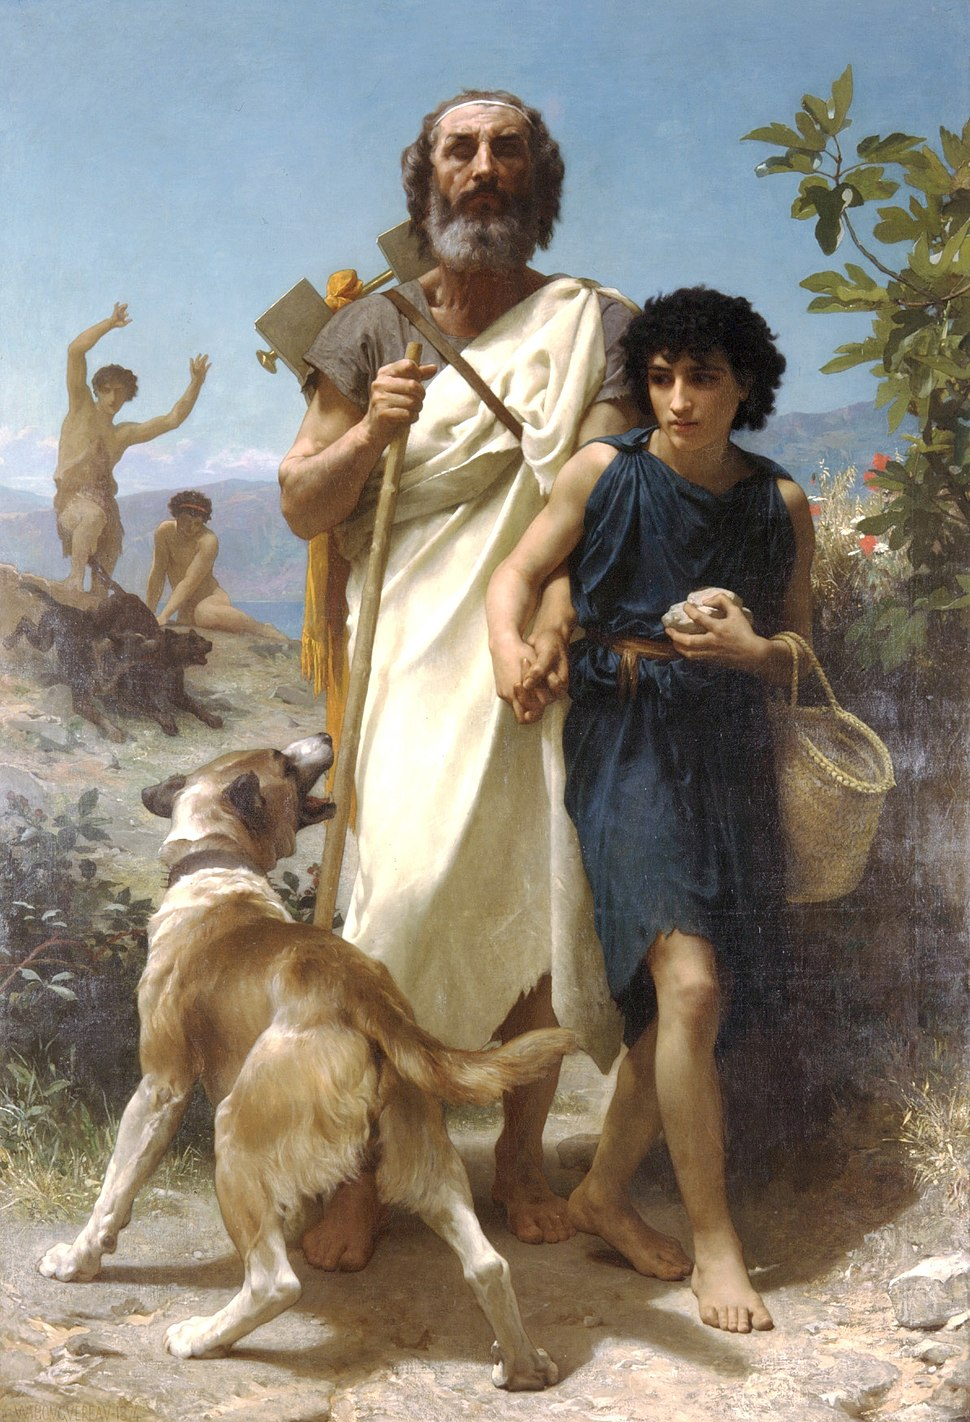 William-Adolphe Bouguereau (1825-1905) - Homer and his Guide (1874)